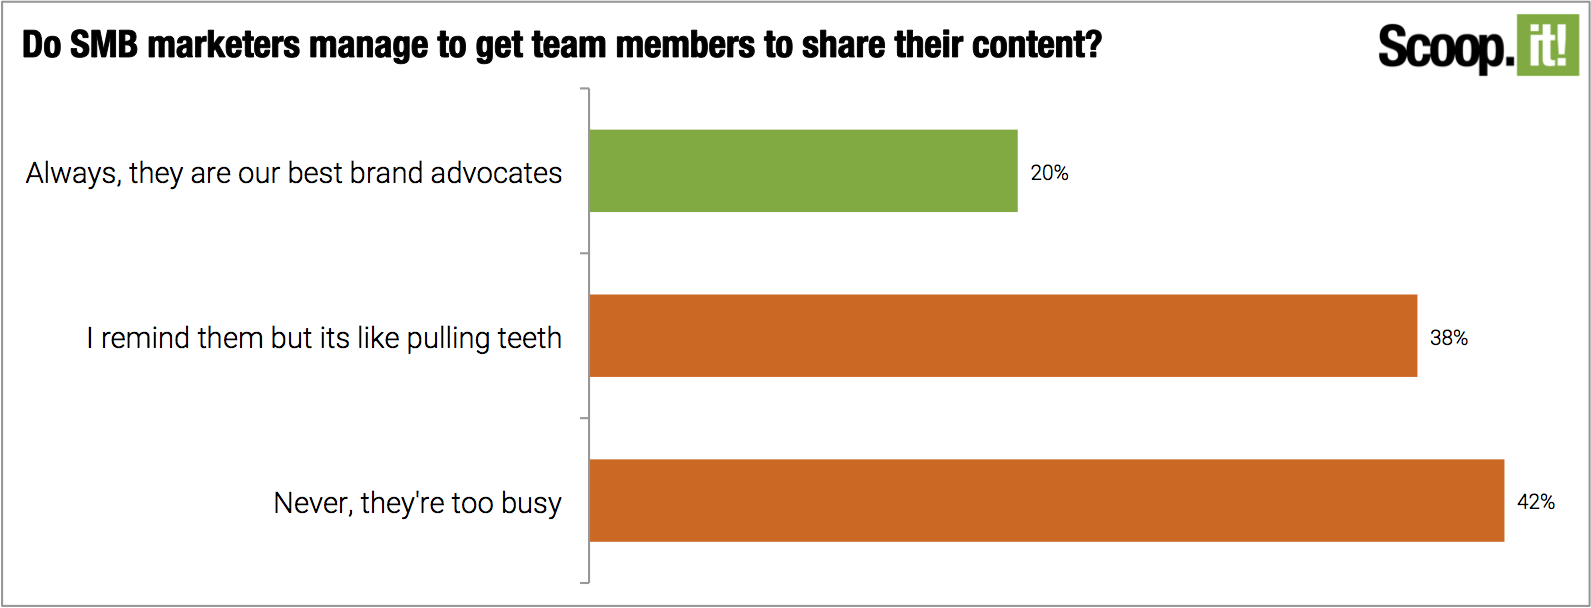 Do SMB marketers manage to get team members to share their content?